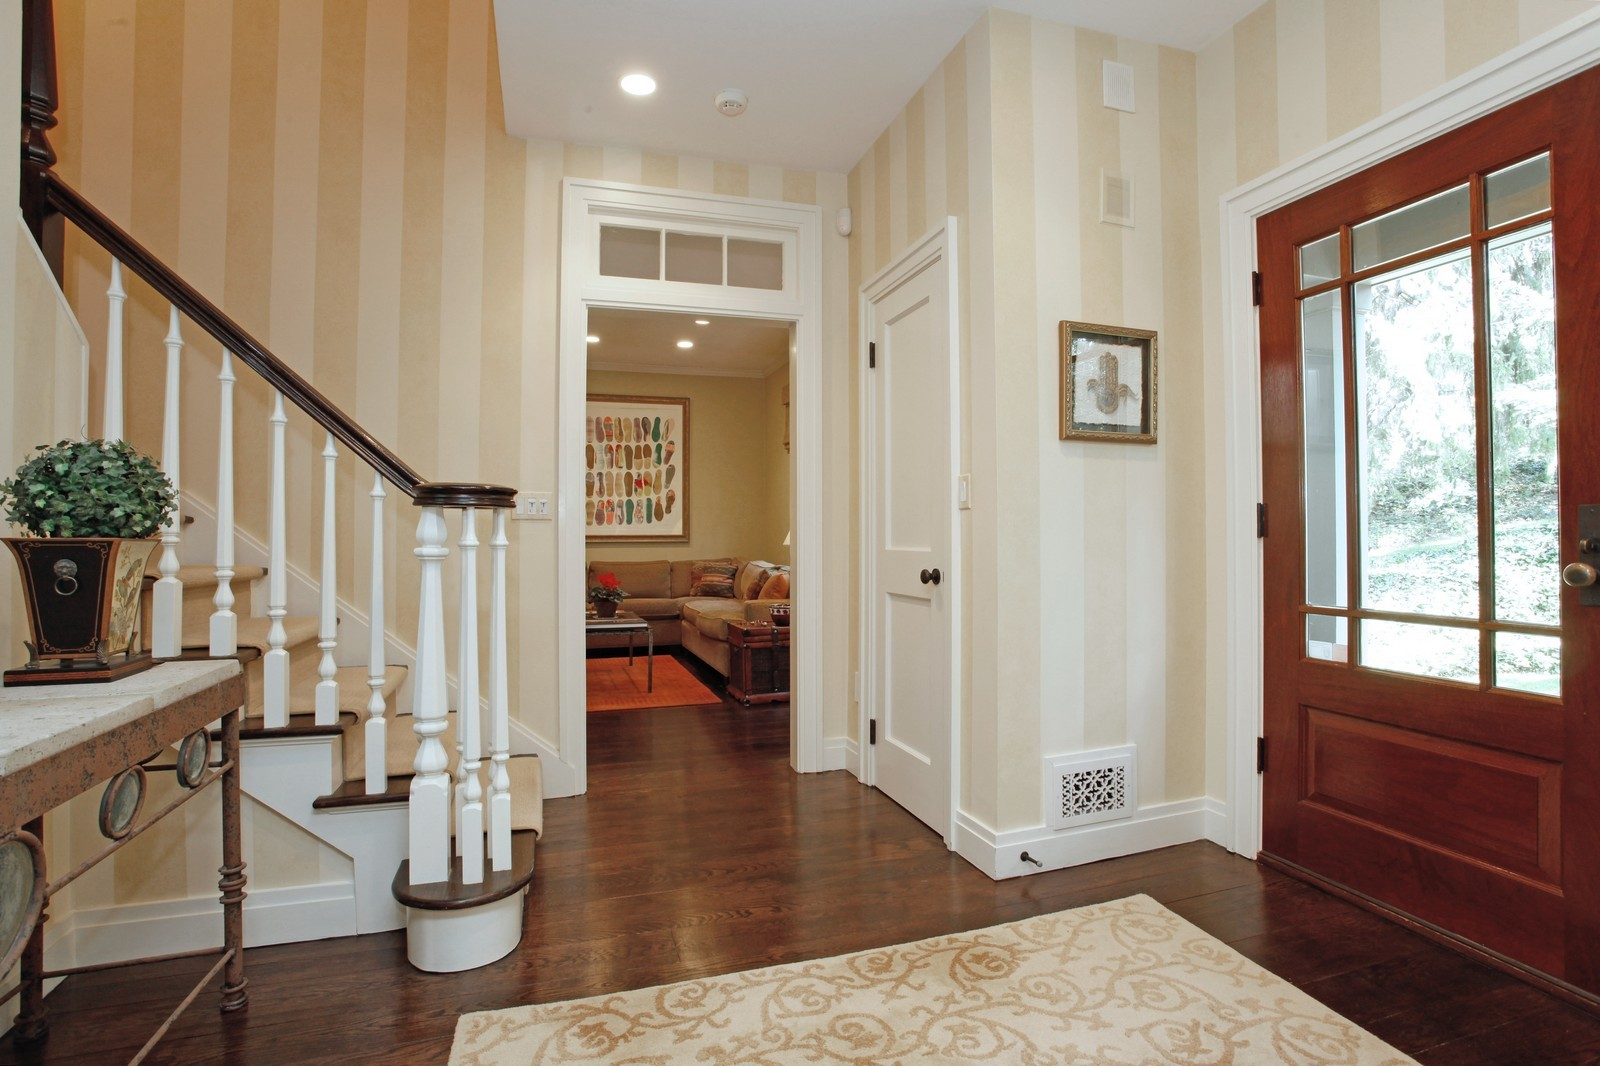 Real Estate Photography - 30 Hadden Rd, Scarsdale, NY, 10583 - Entryway